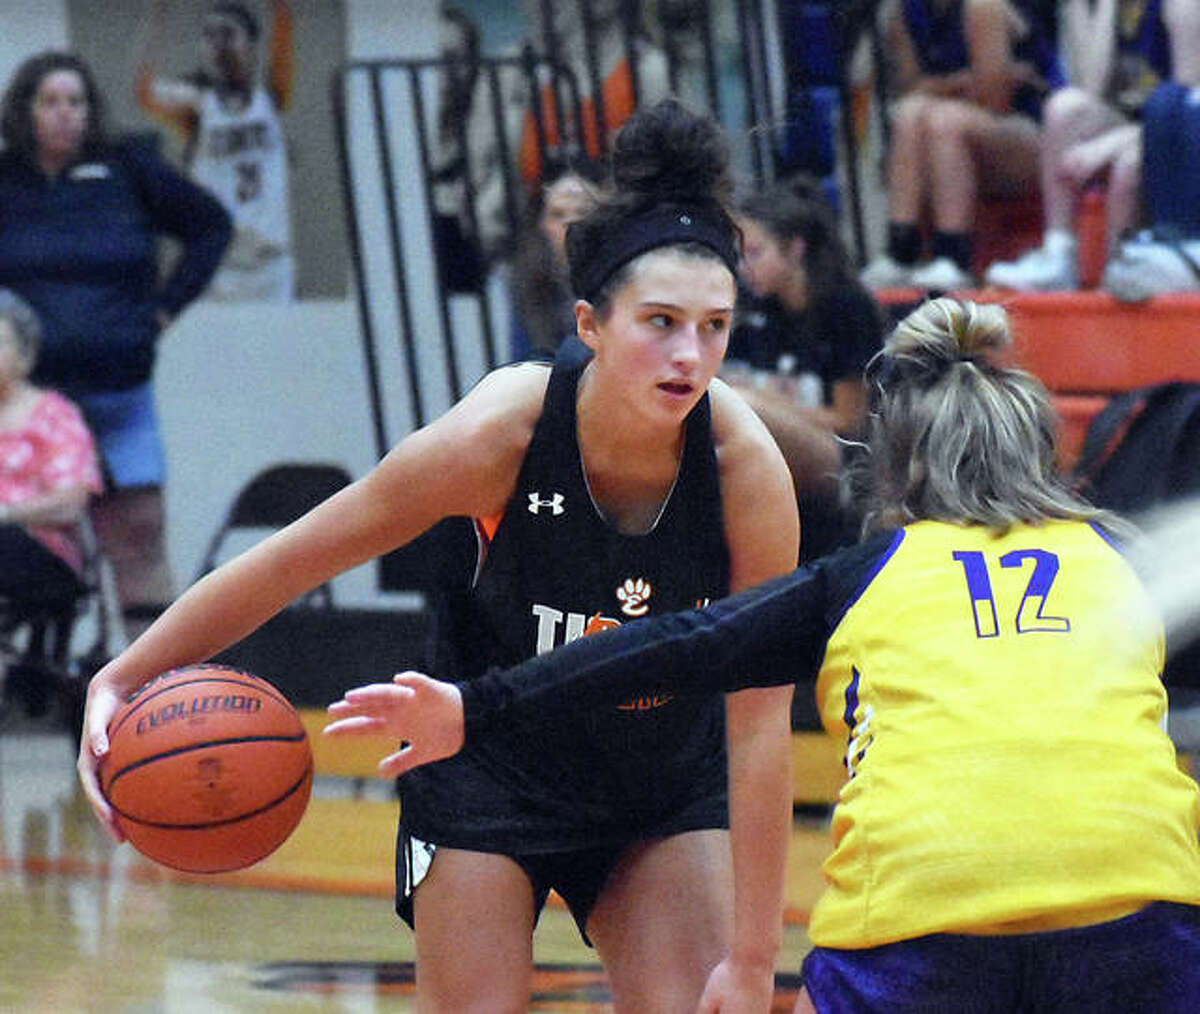 Edwardsville guard Macy Silvey runs the offense at the top of the arc during a scrimmage against Civic Memorial on Tuesday inside Lucco-Jackson Gymnasium.